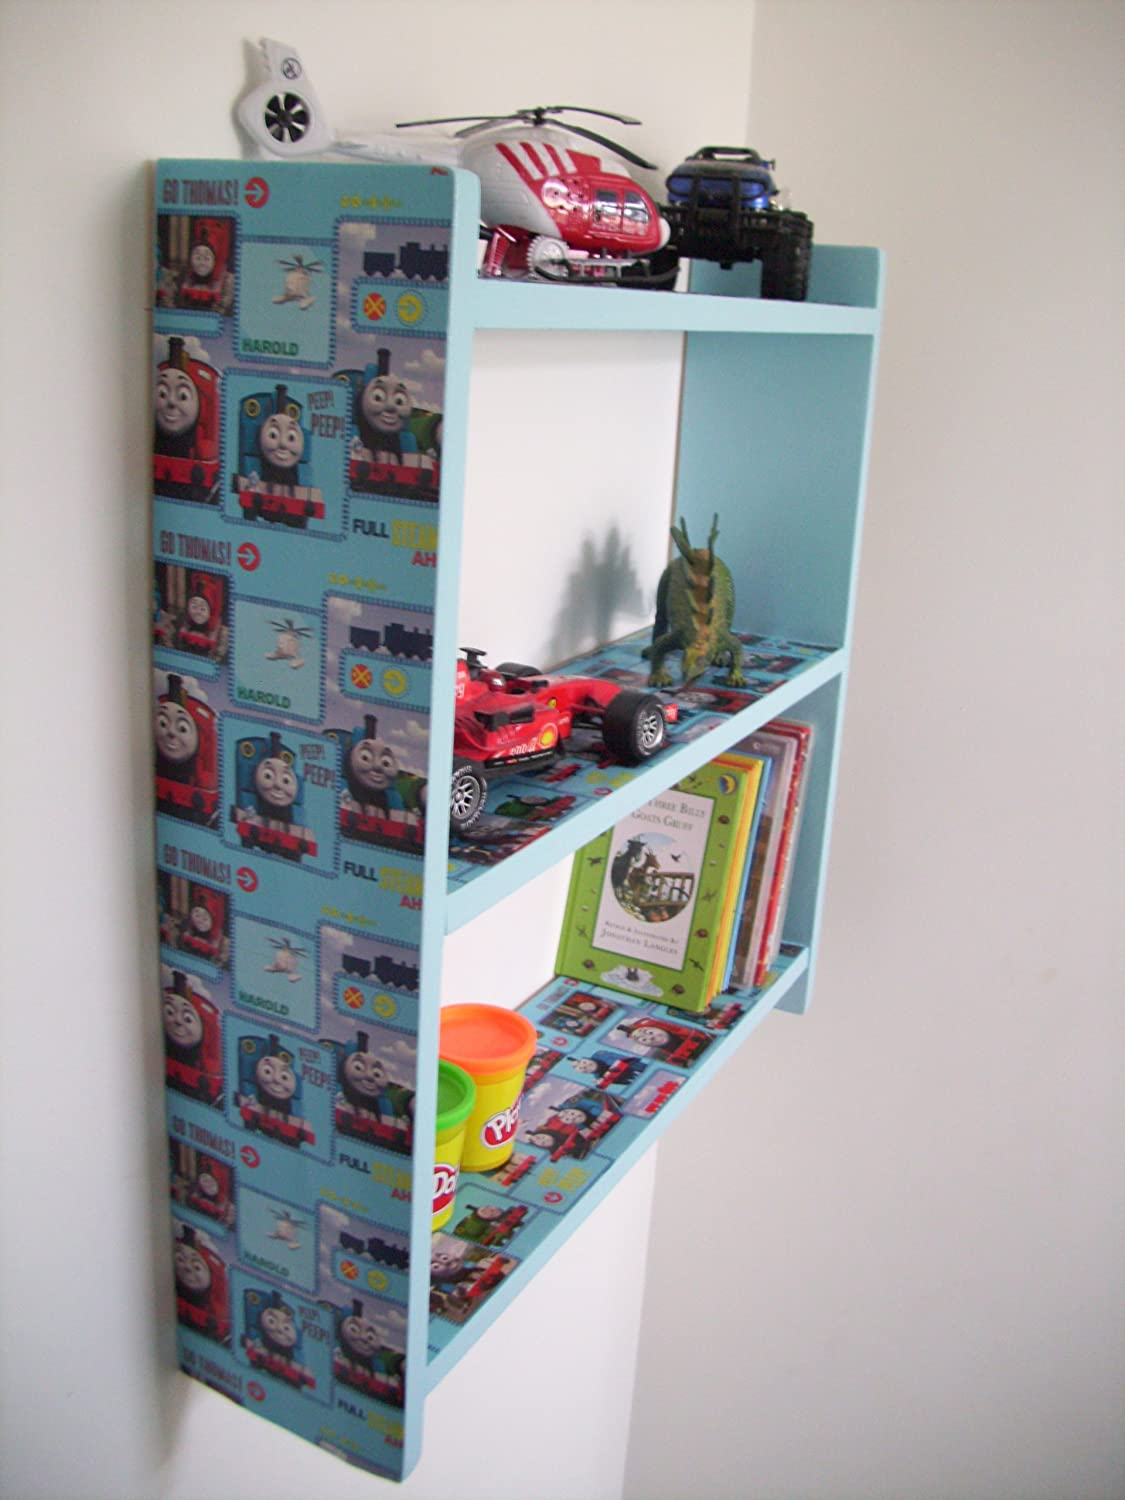 Shelves Childrens Bedroom 70cm H Boys Thomas The Tank Engine Shelves Childrens Bedroom